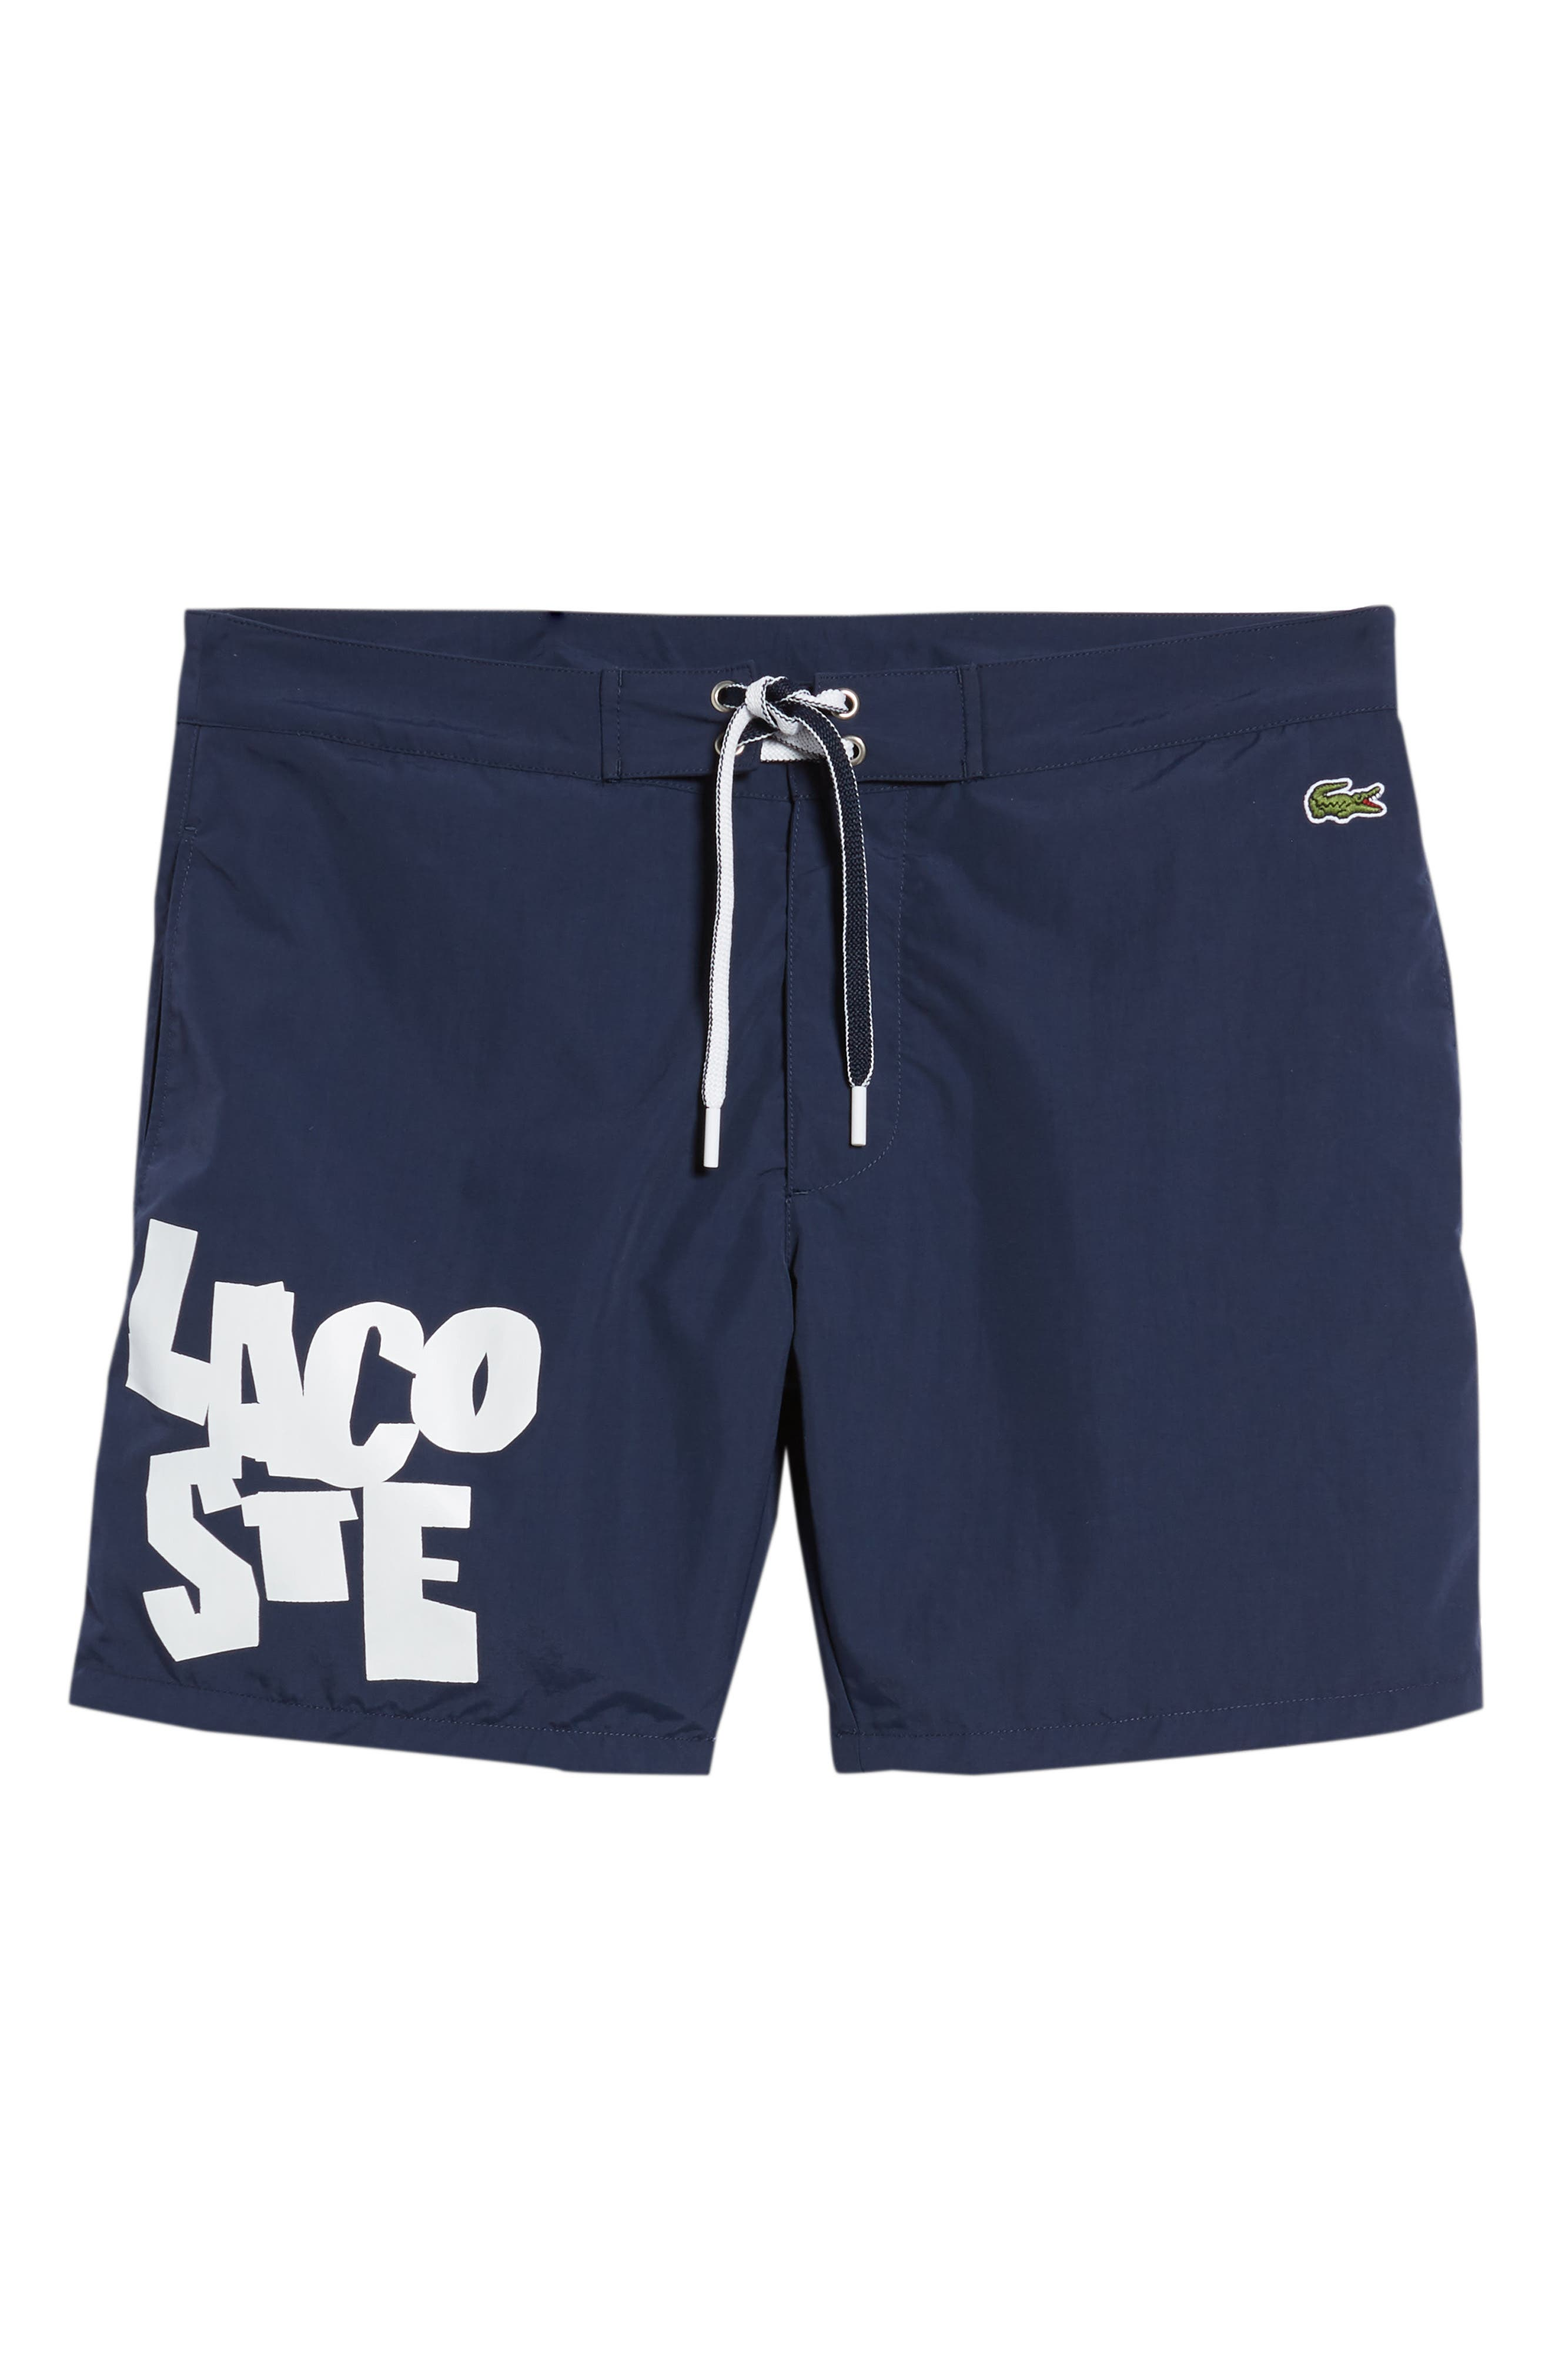 Graphic Swim Trunks,                             Alternate thumbnail 6, color,                             410